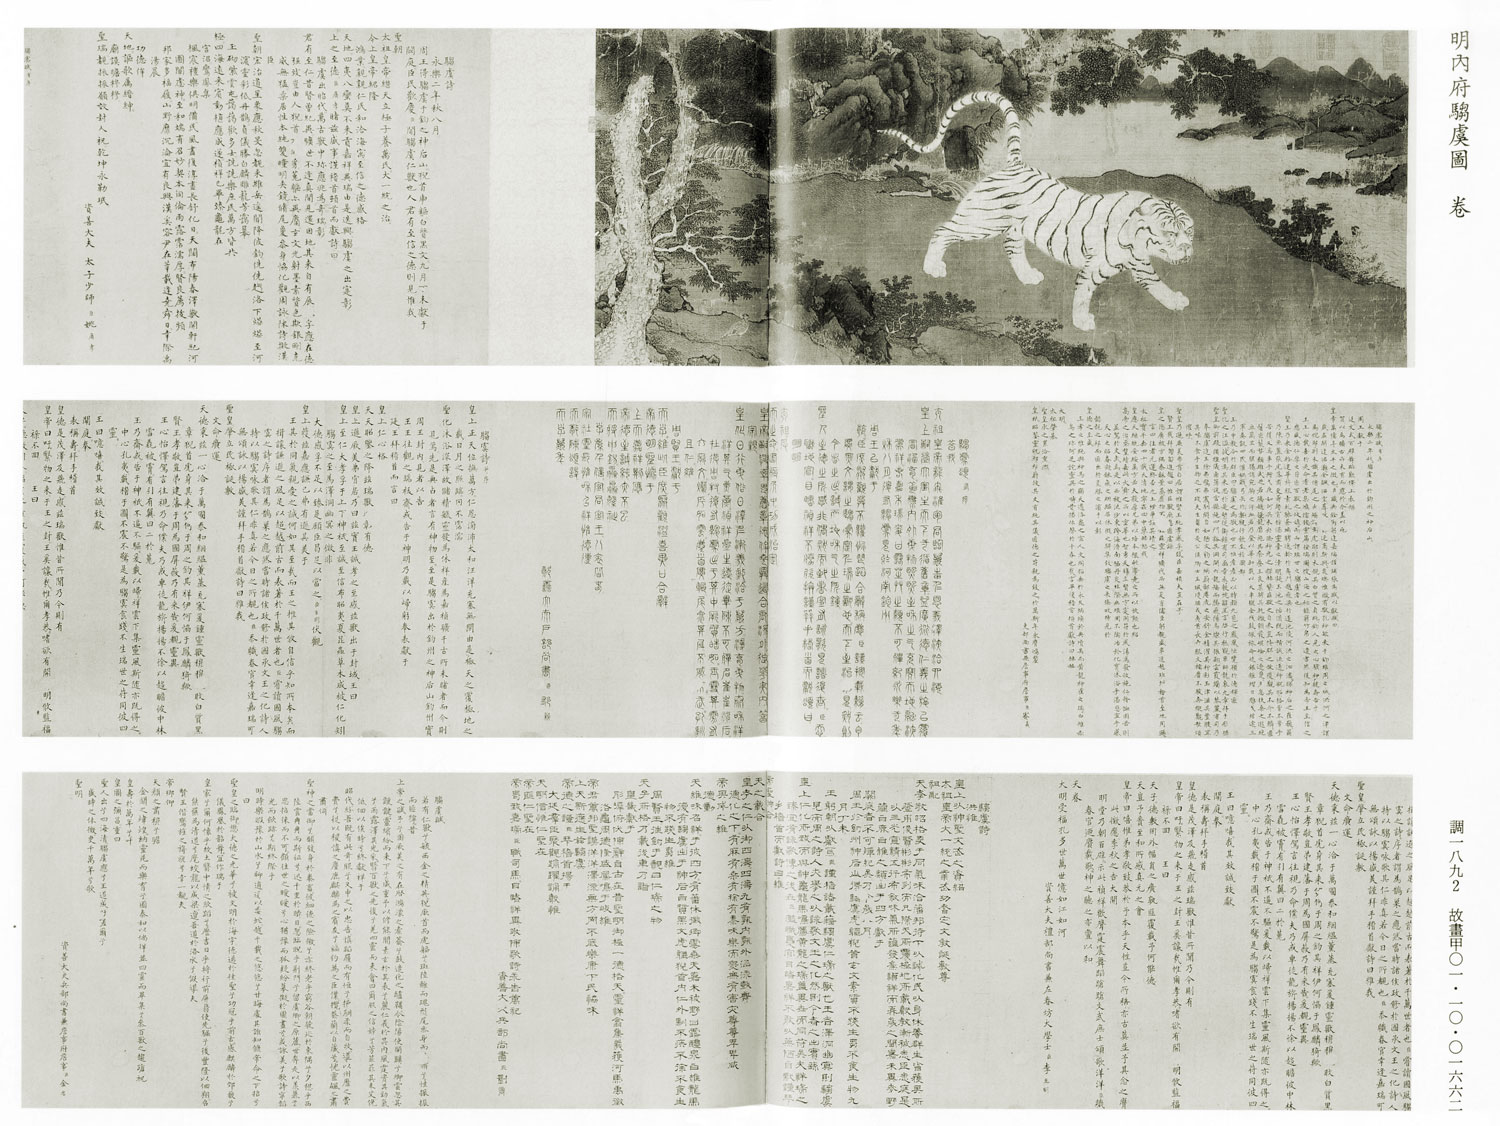 Three two-page spreads from a book: in the top spread, Chinese text on the left and a drawing of a tiger on a riverbank on the right; center and bottom spreads, more Chinese text